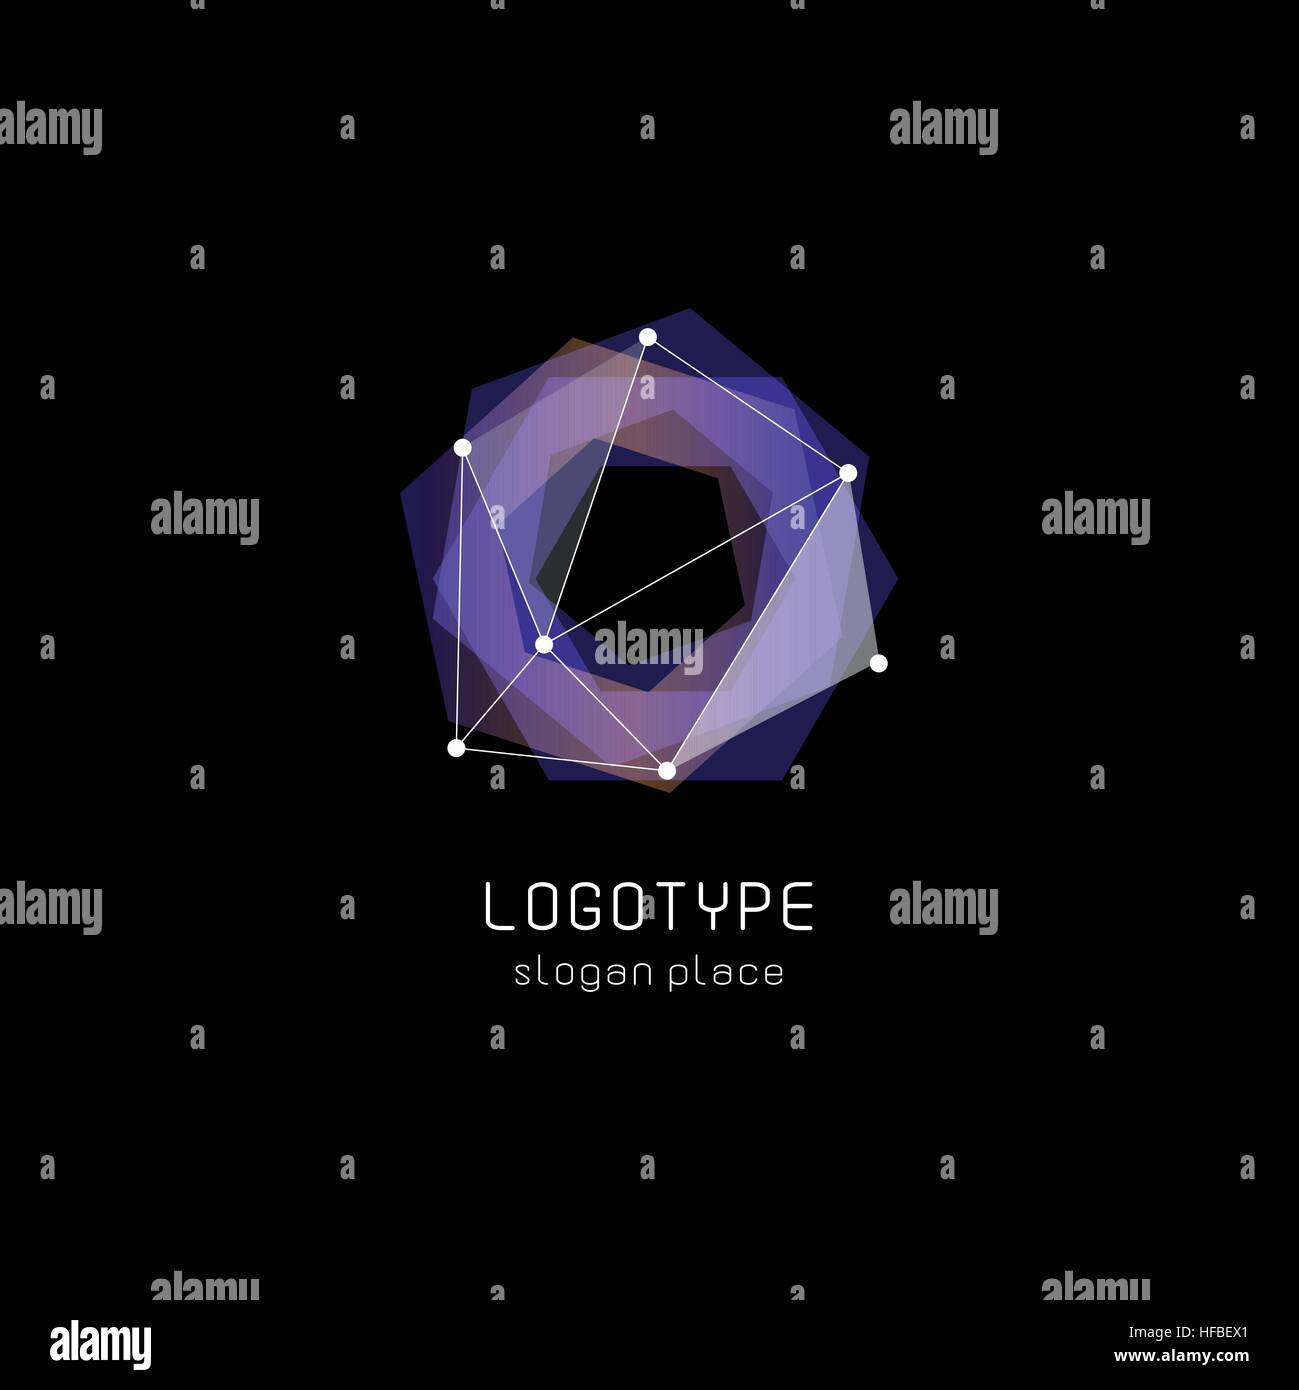 Unusual abstract geometric shapes vector logo. Circular, polygonal colorful logotypes on the black background. - Stock Image